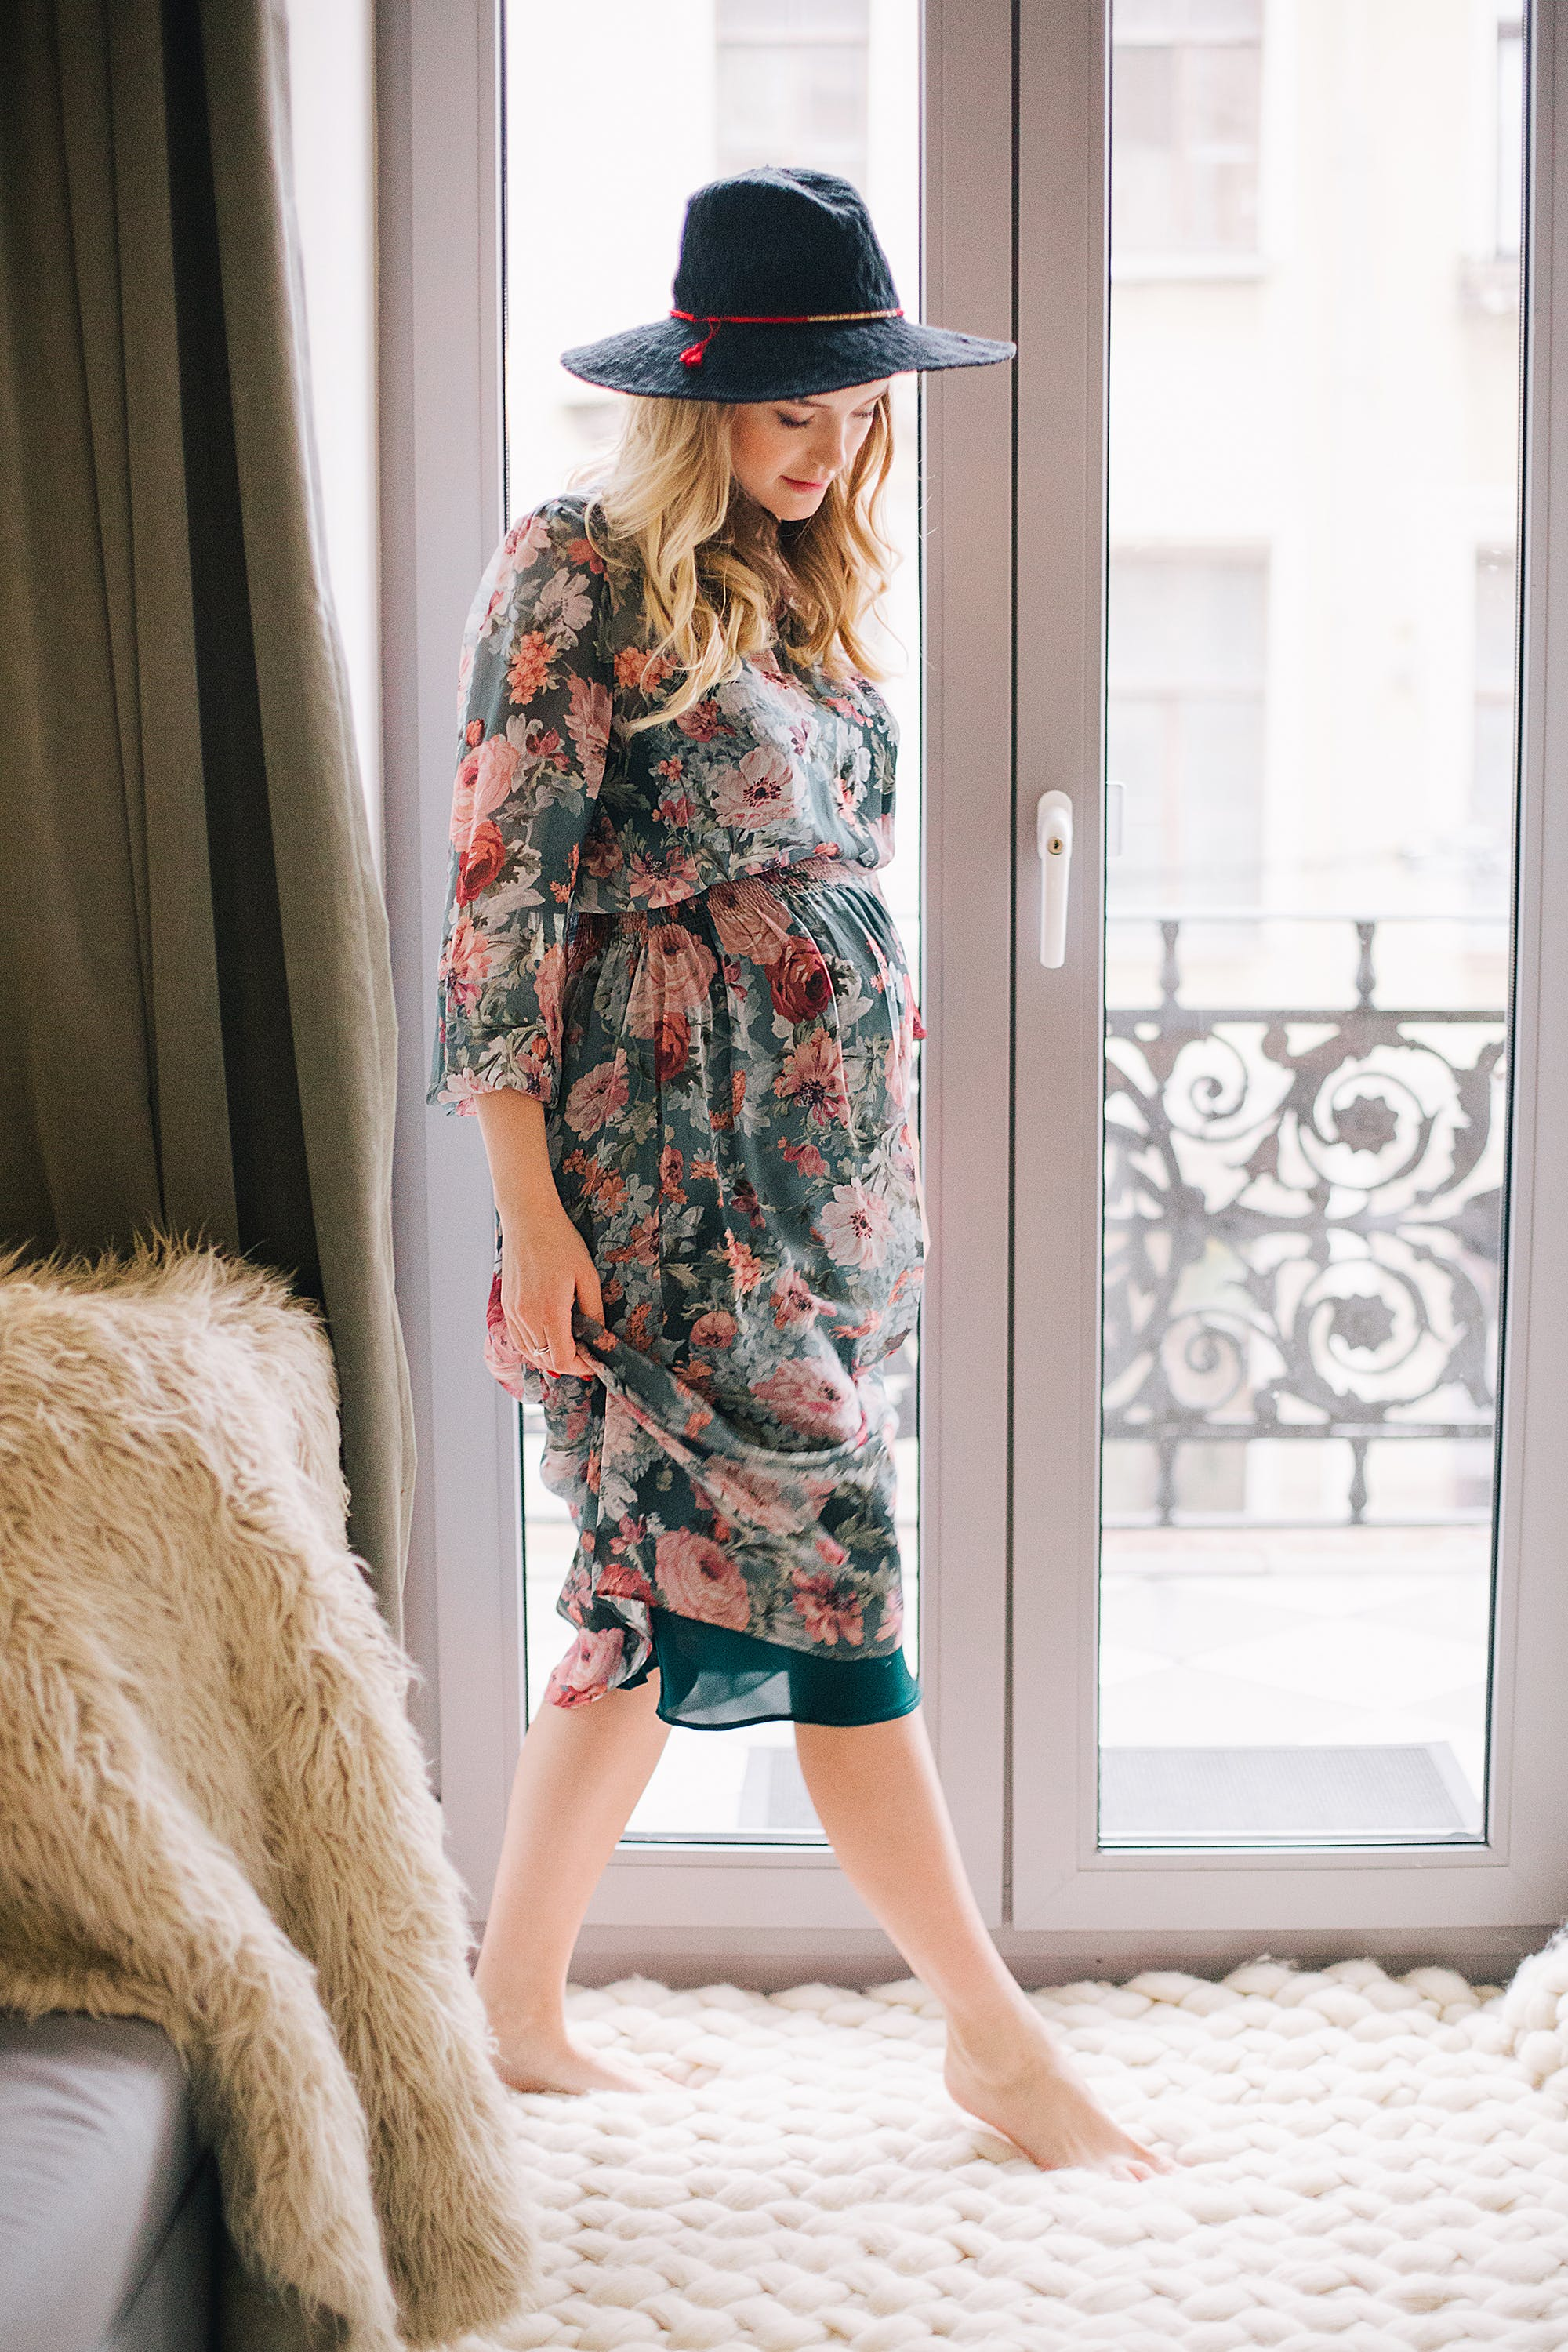 Woman in Black, Pink, and Red Floral Long-sleeve Dress